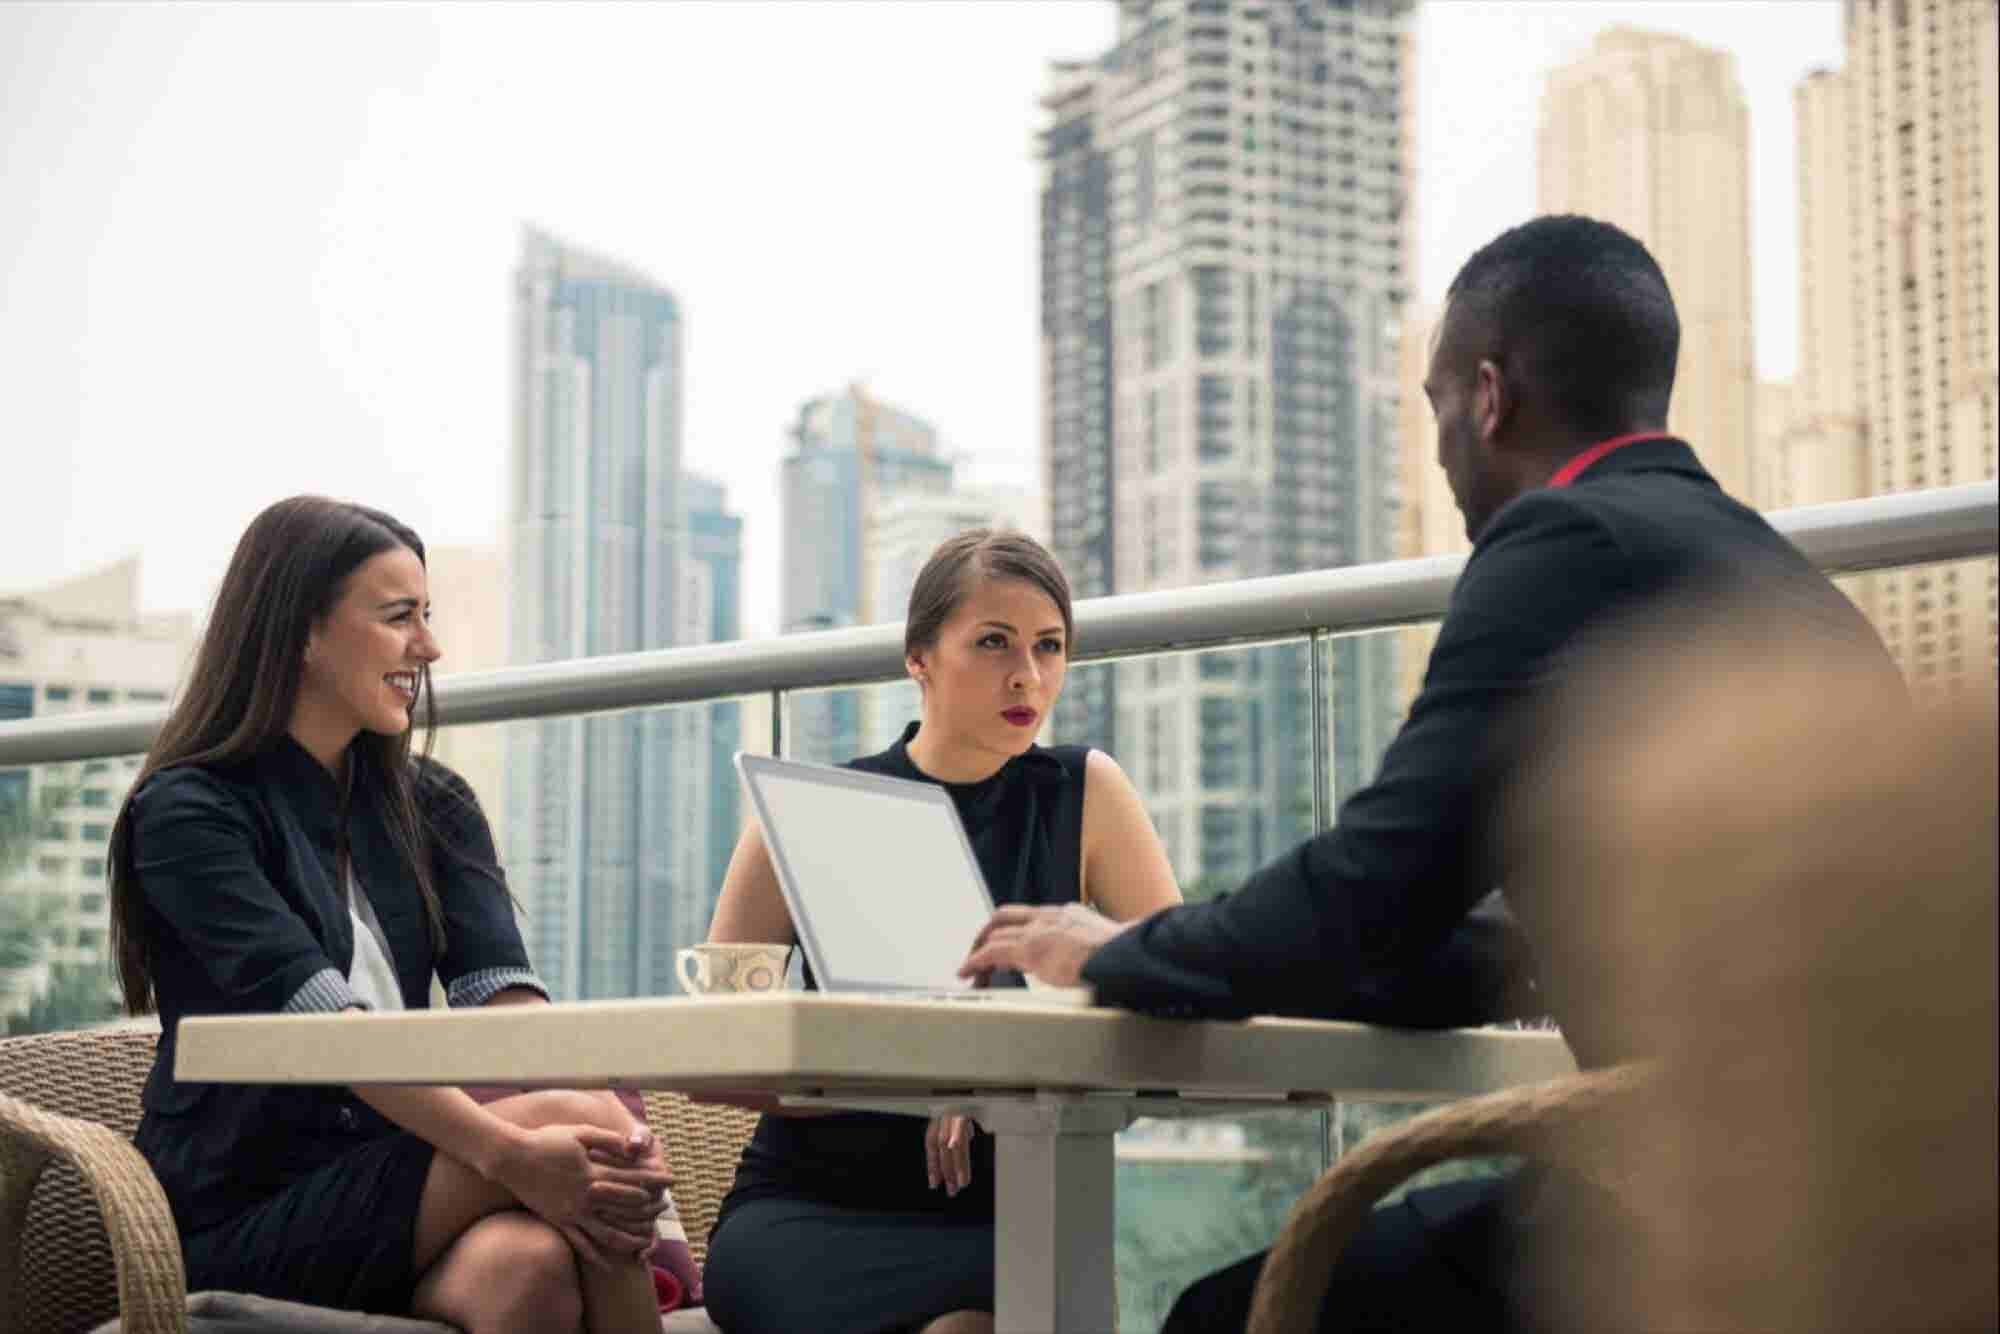 #5 Reasons Why Start-ups Should Hire a PR Firm